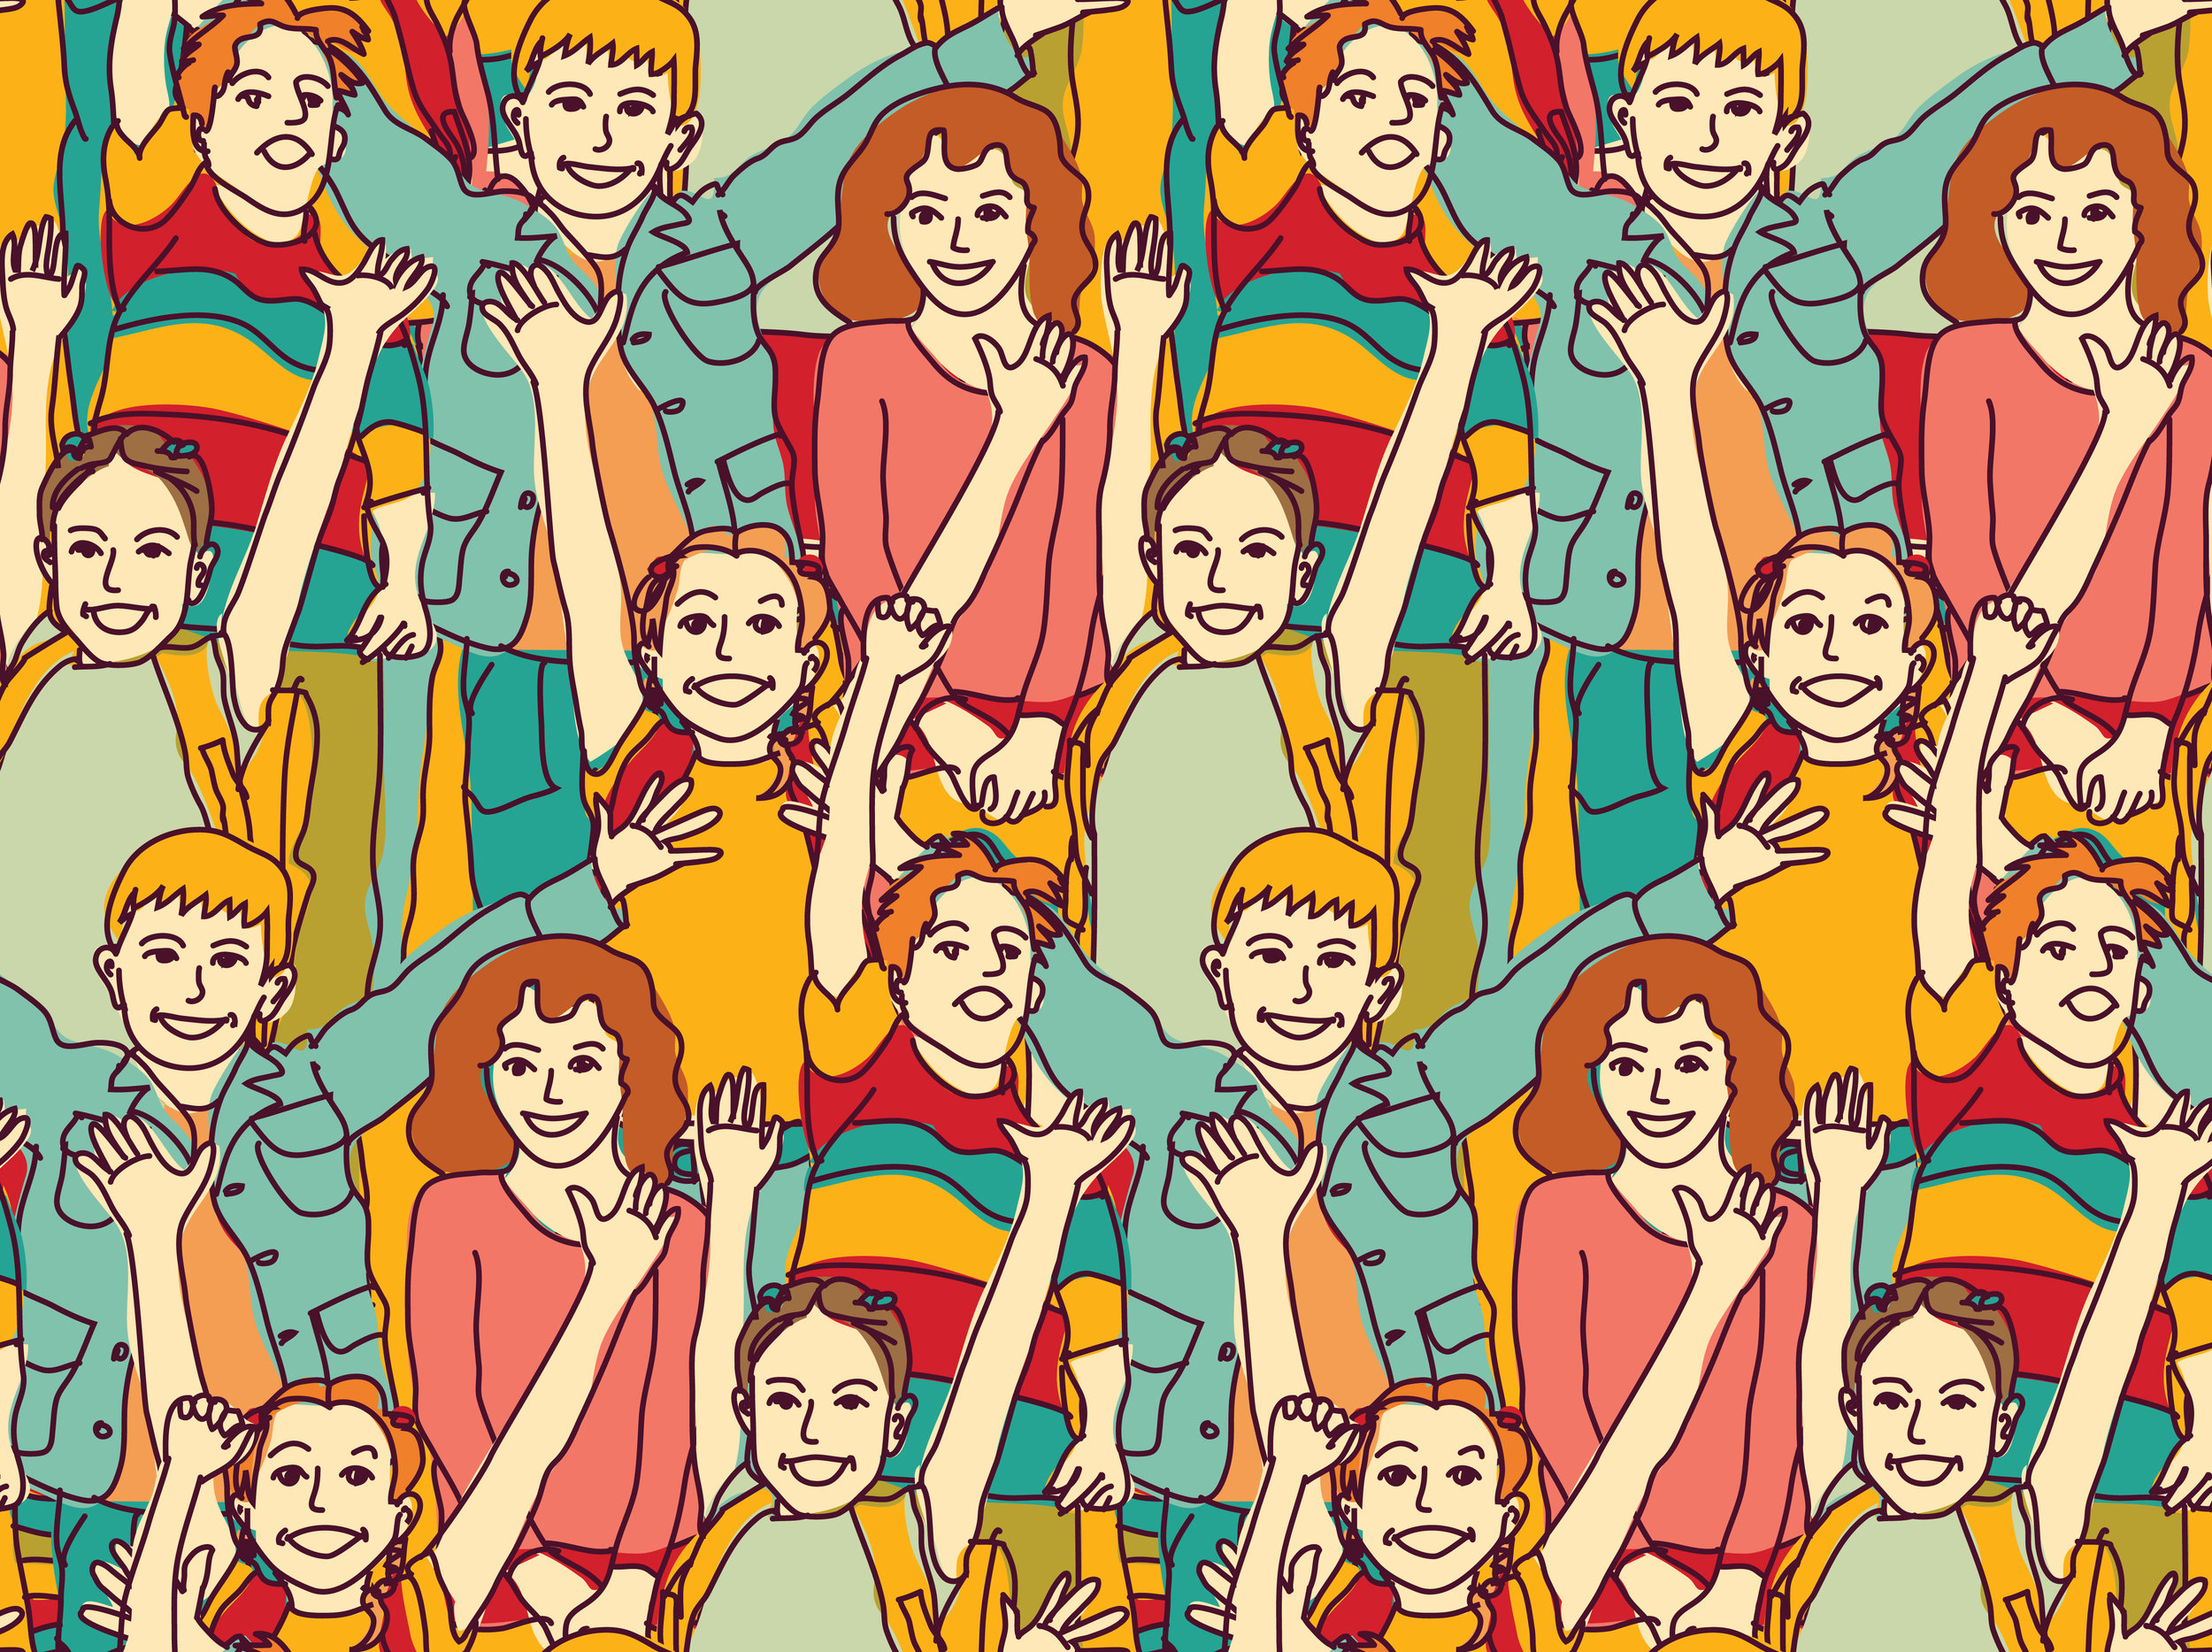 happy-crowd-children-color-seamless-pattern.jpg